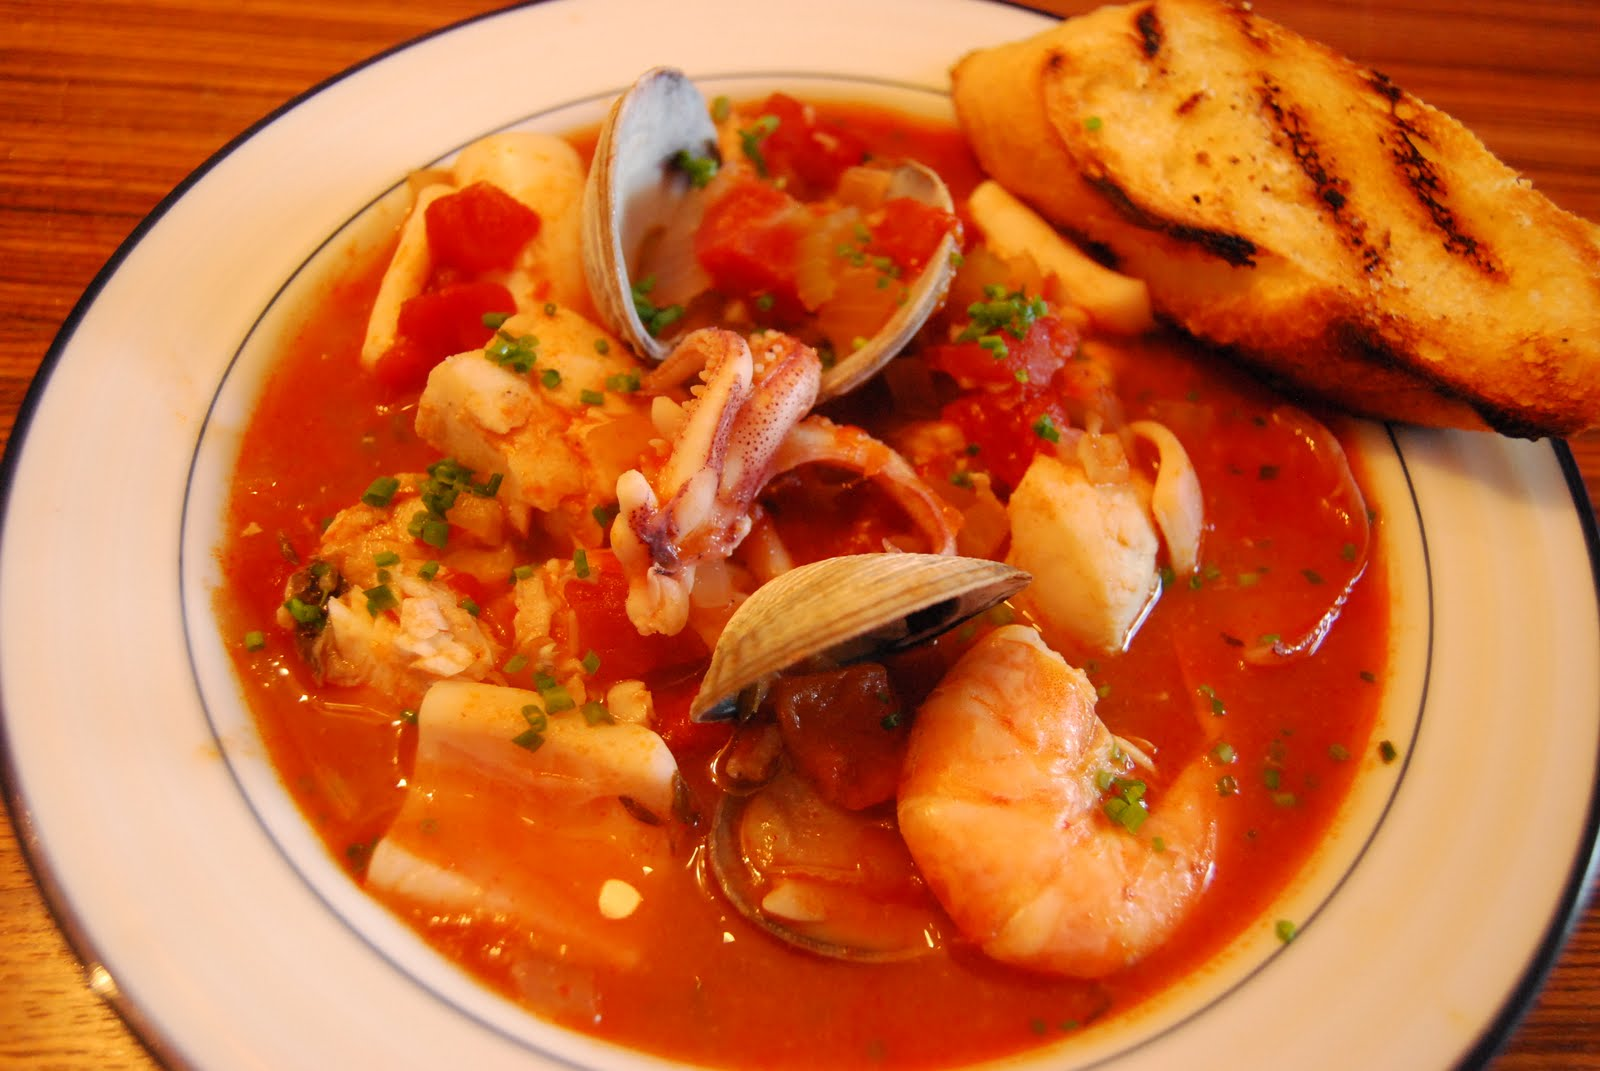 EAT Everyday: Cioppino with Clams, Cod, Shrimp and Squid